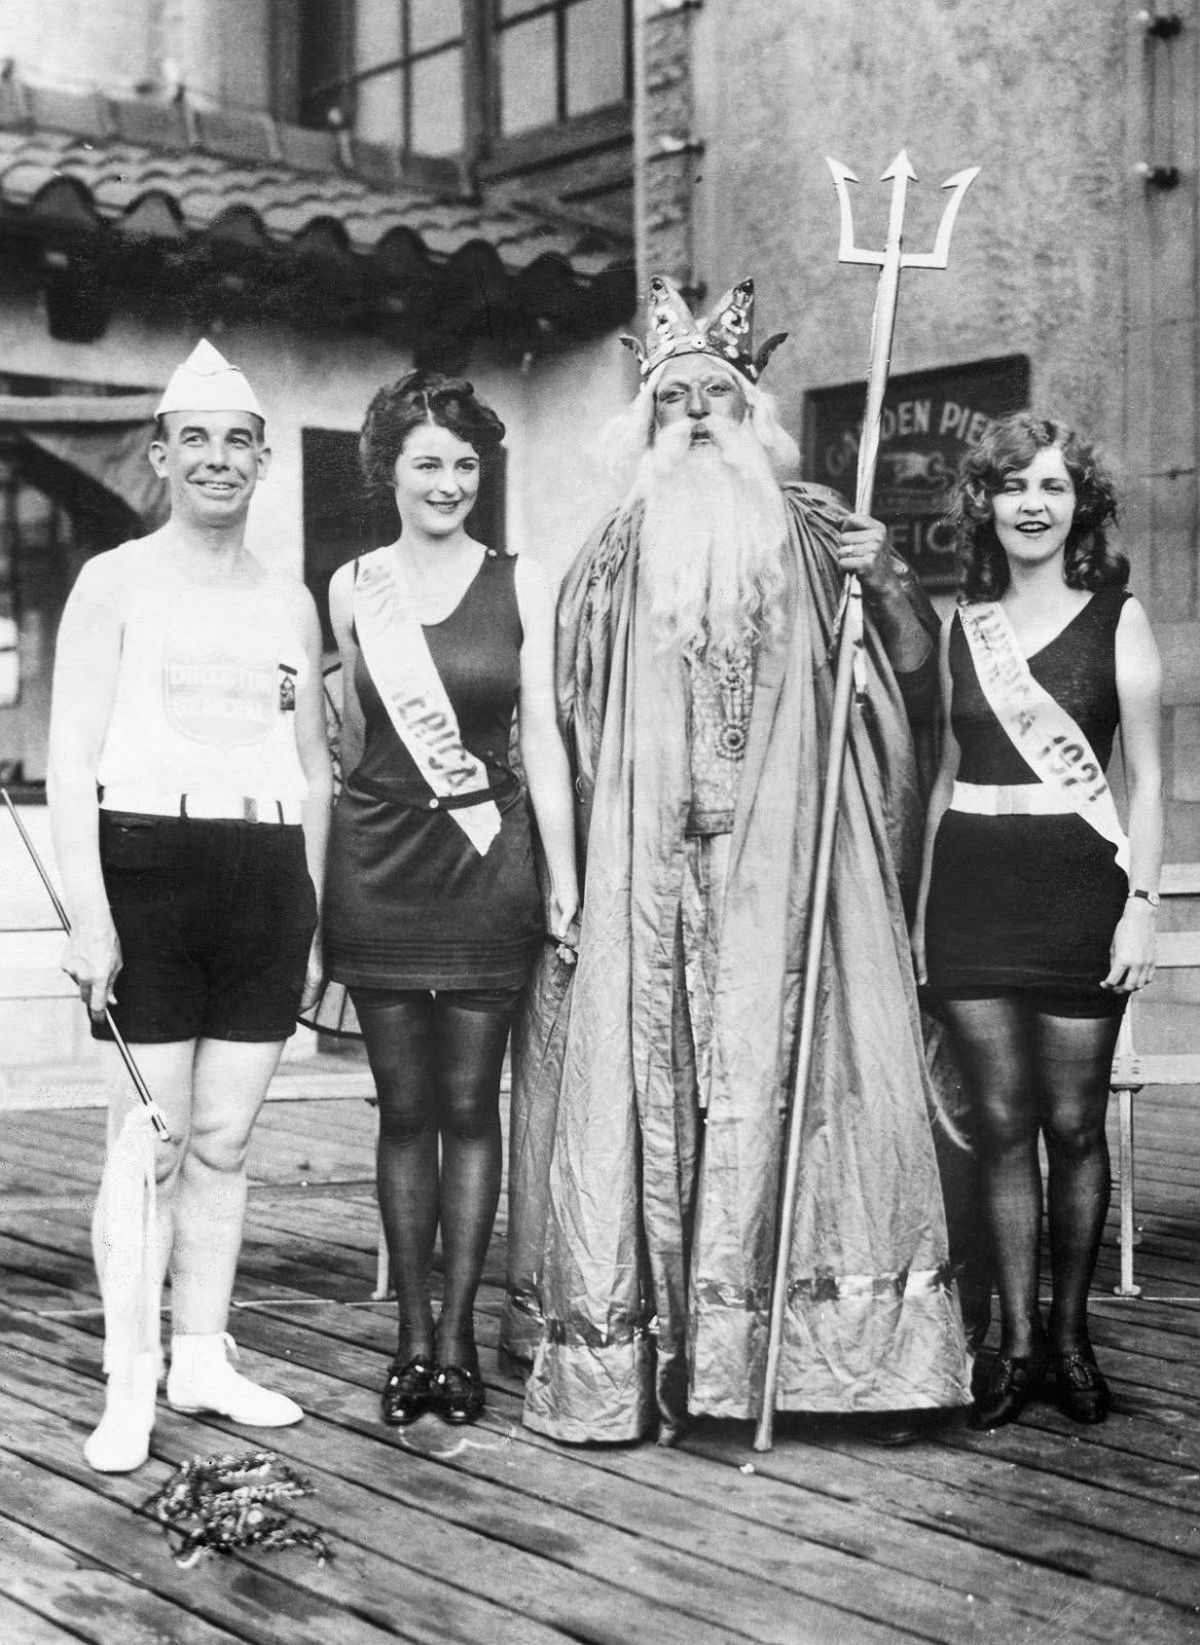 1922 - Gorman, far right, poses with Neptune, pageant director Armand T. Nichols, and her successor, 1922 Miss America Mary Campbell.